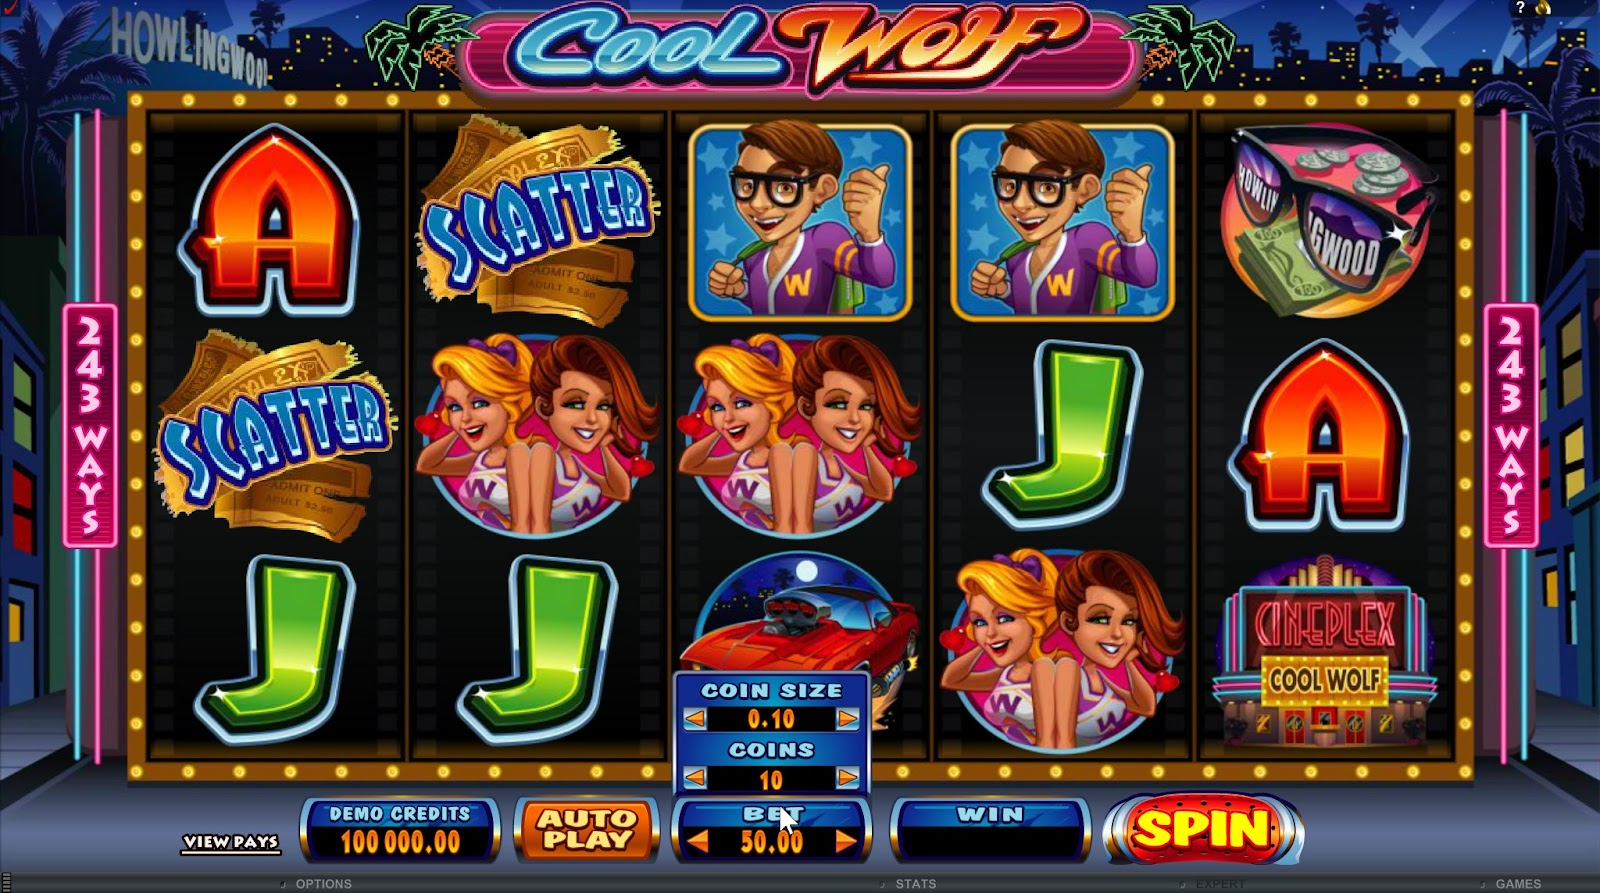 Cool Wolf Slots Game Review